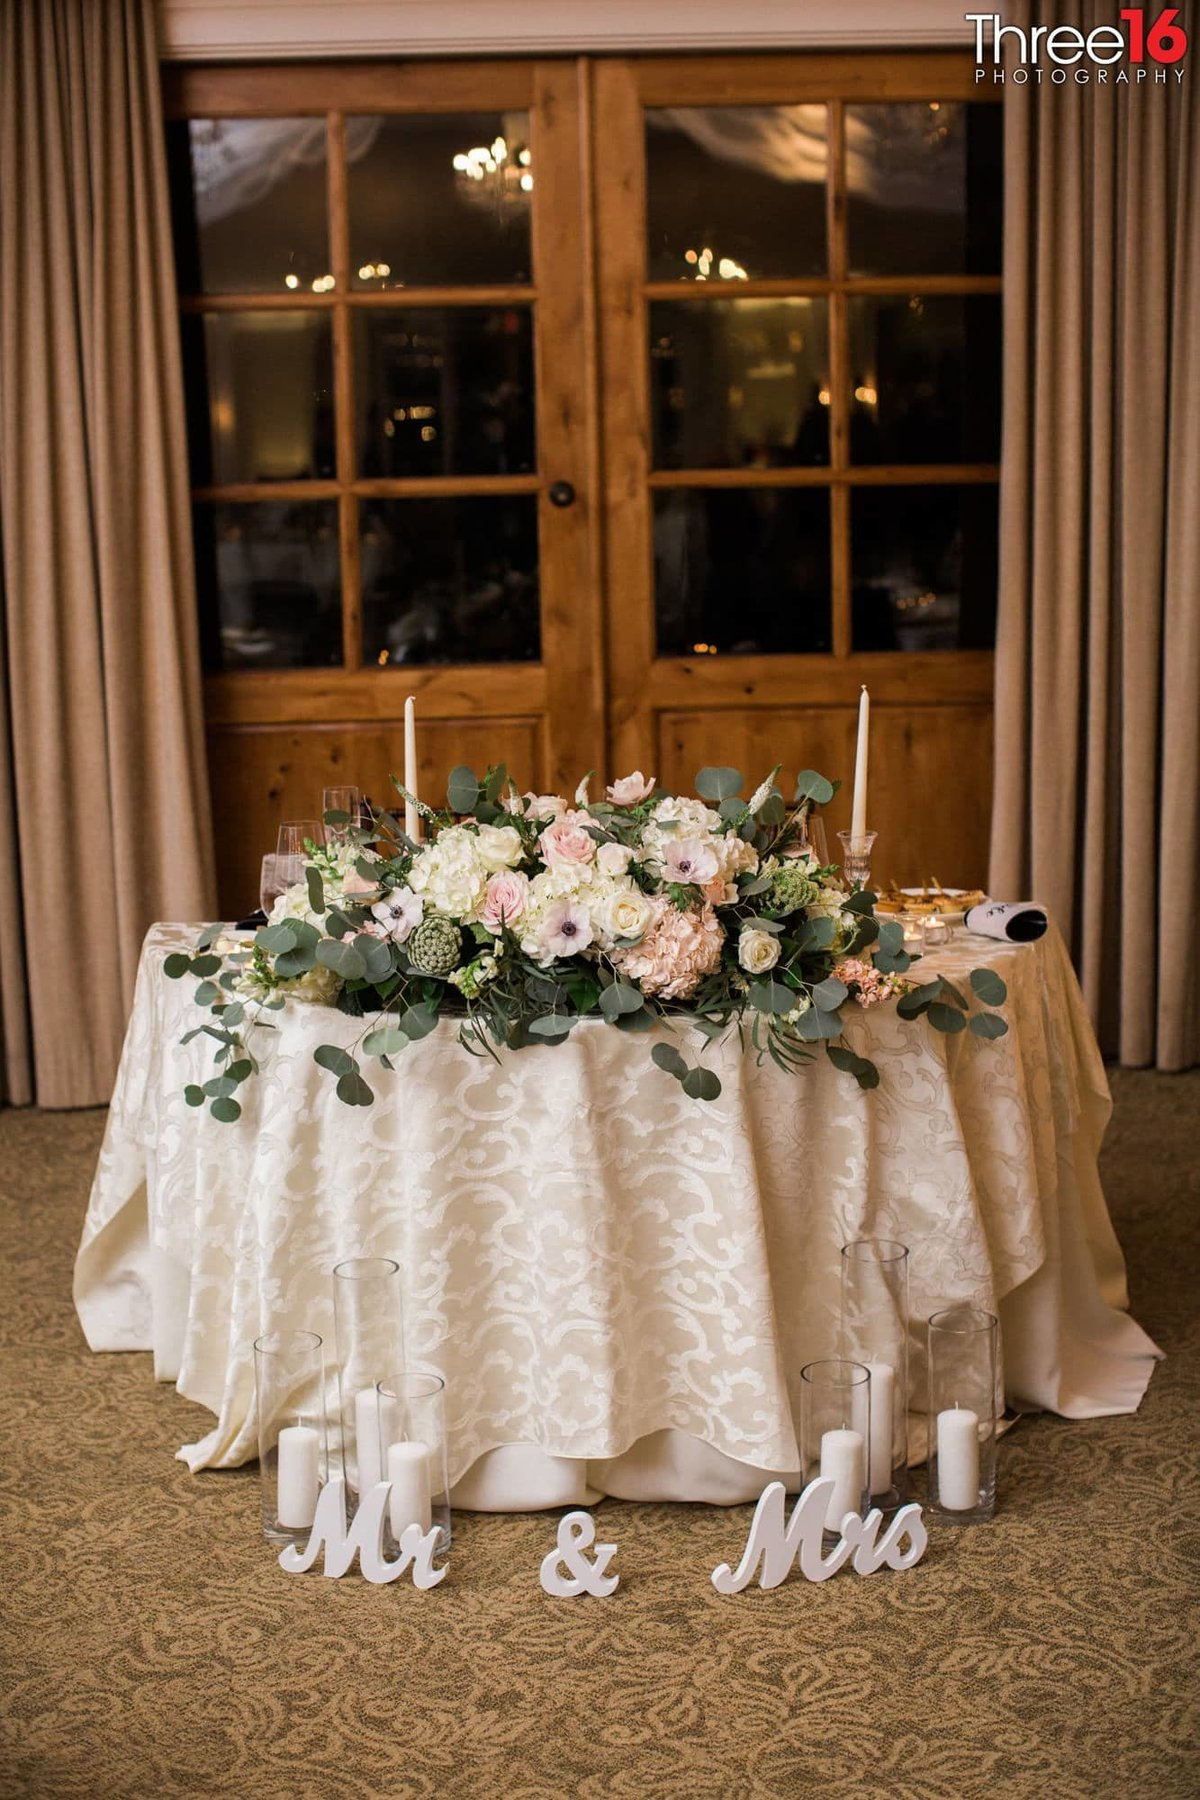 Bridal Table at the Reception